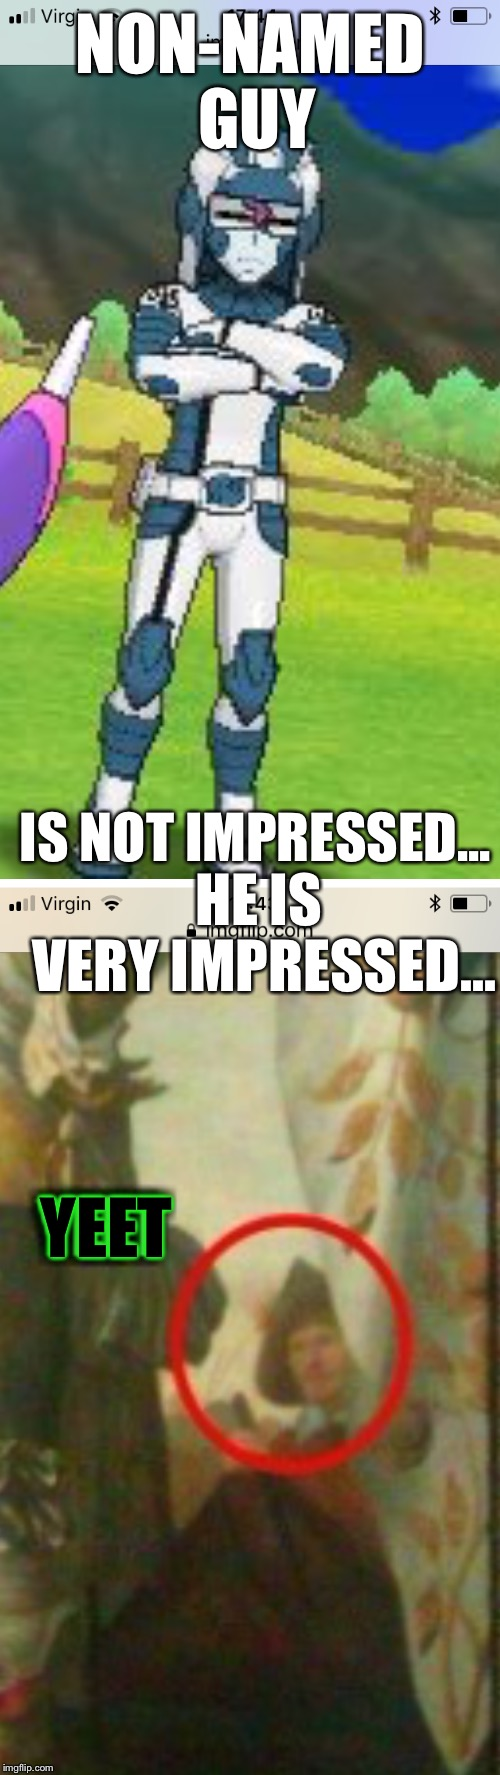 NON-NAMED GUY IS NOT IMPRESSED... HE IS VERY IMPRESSED... YEET | made w/ Imgflip meme maker